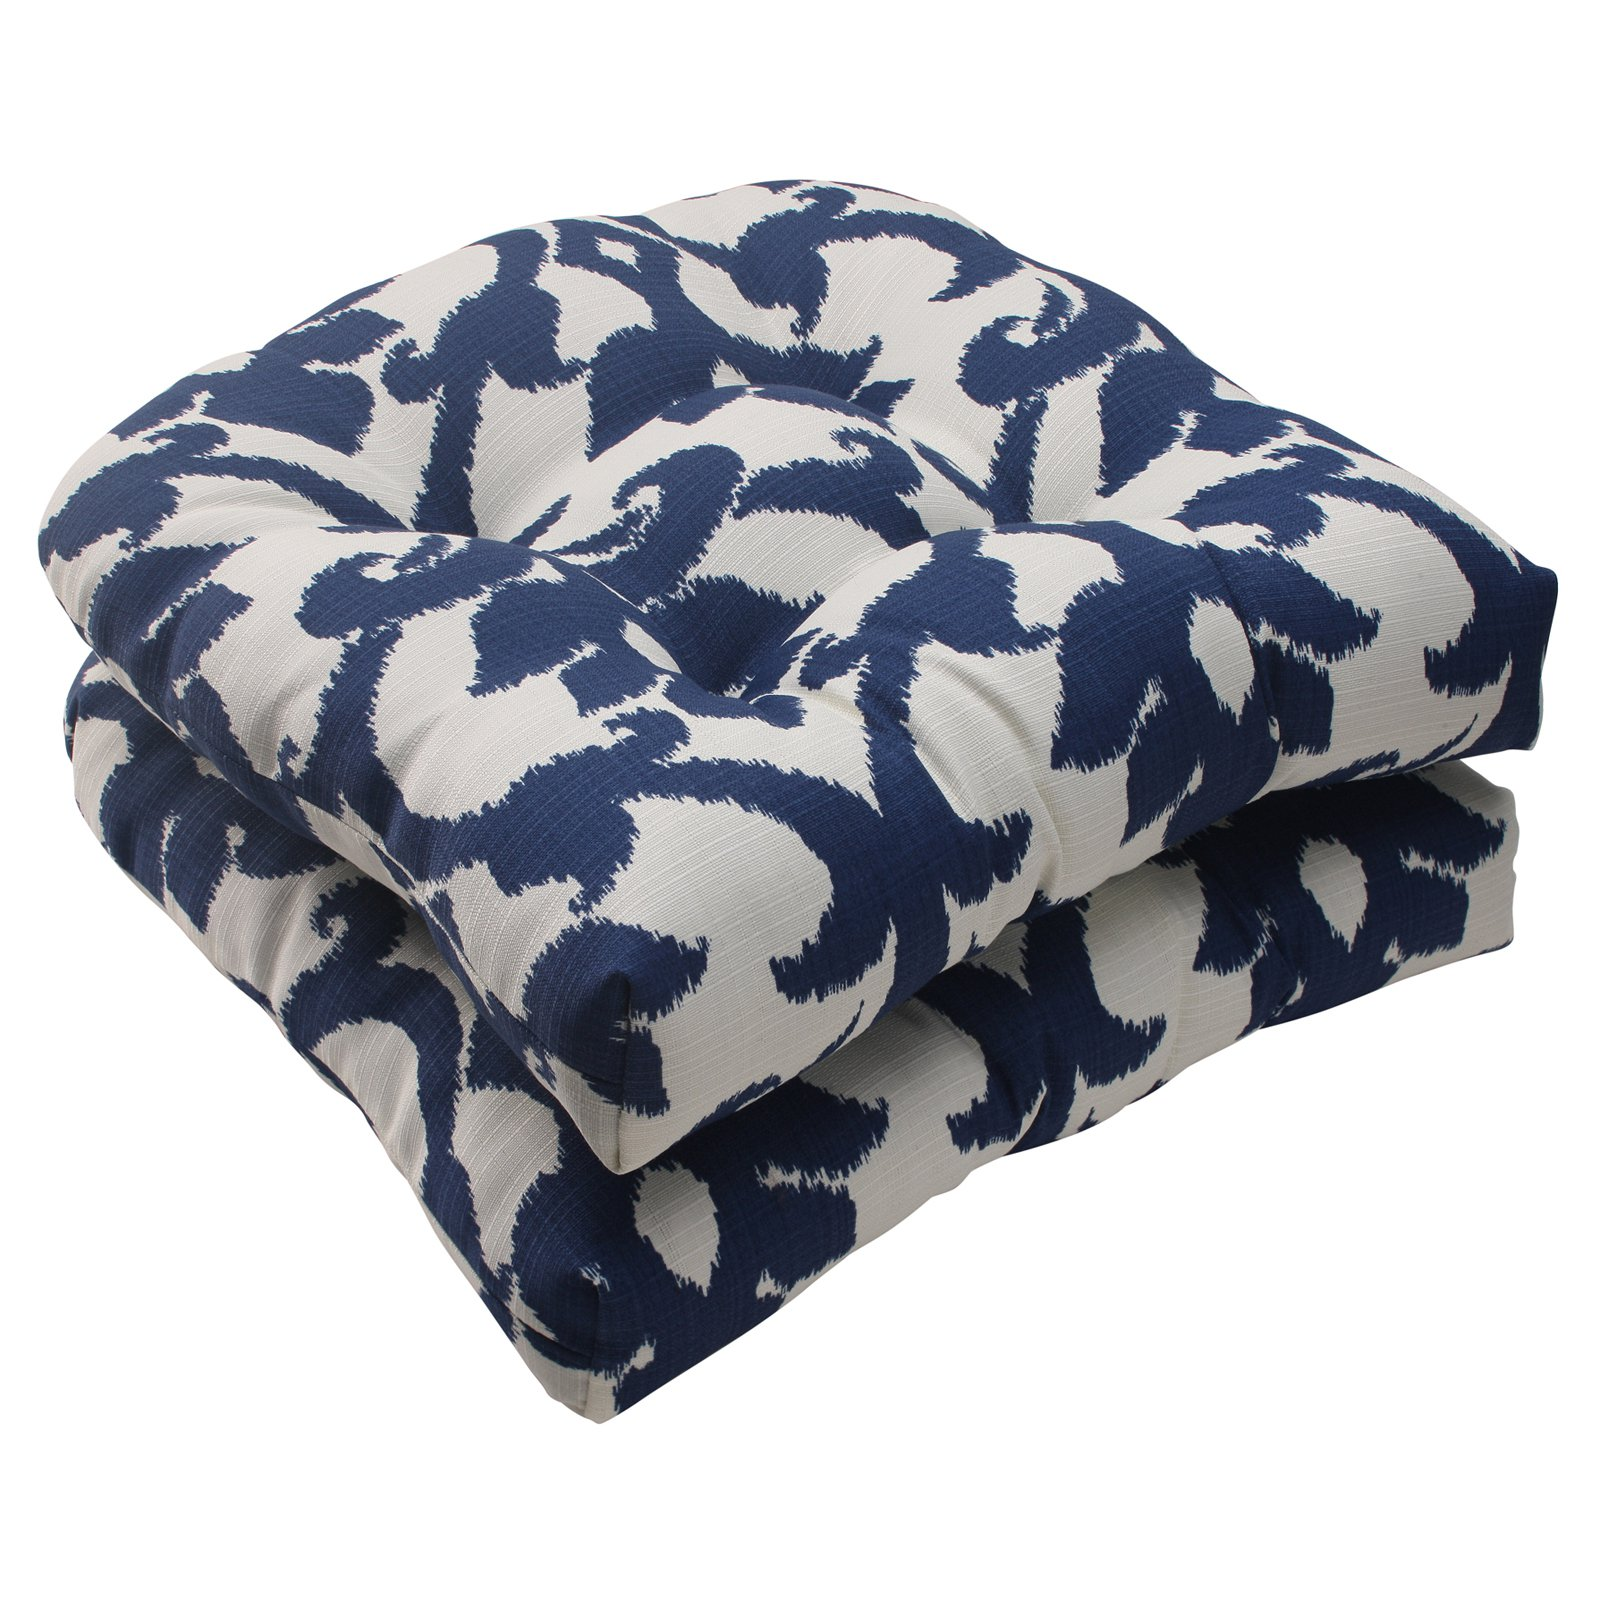 Pillow Perfect Bosco Wicker Seat Cushion - Set of 2